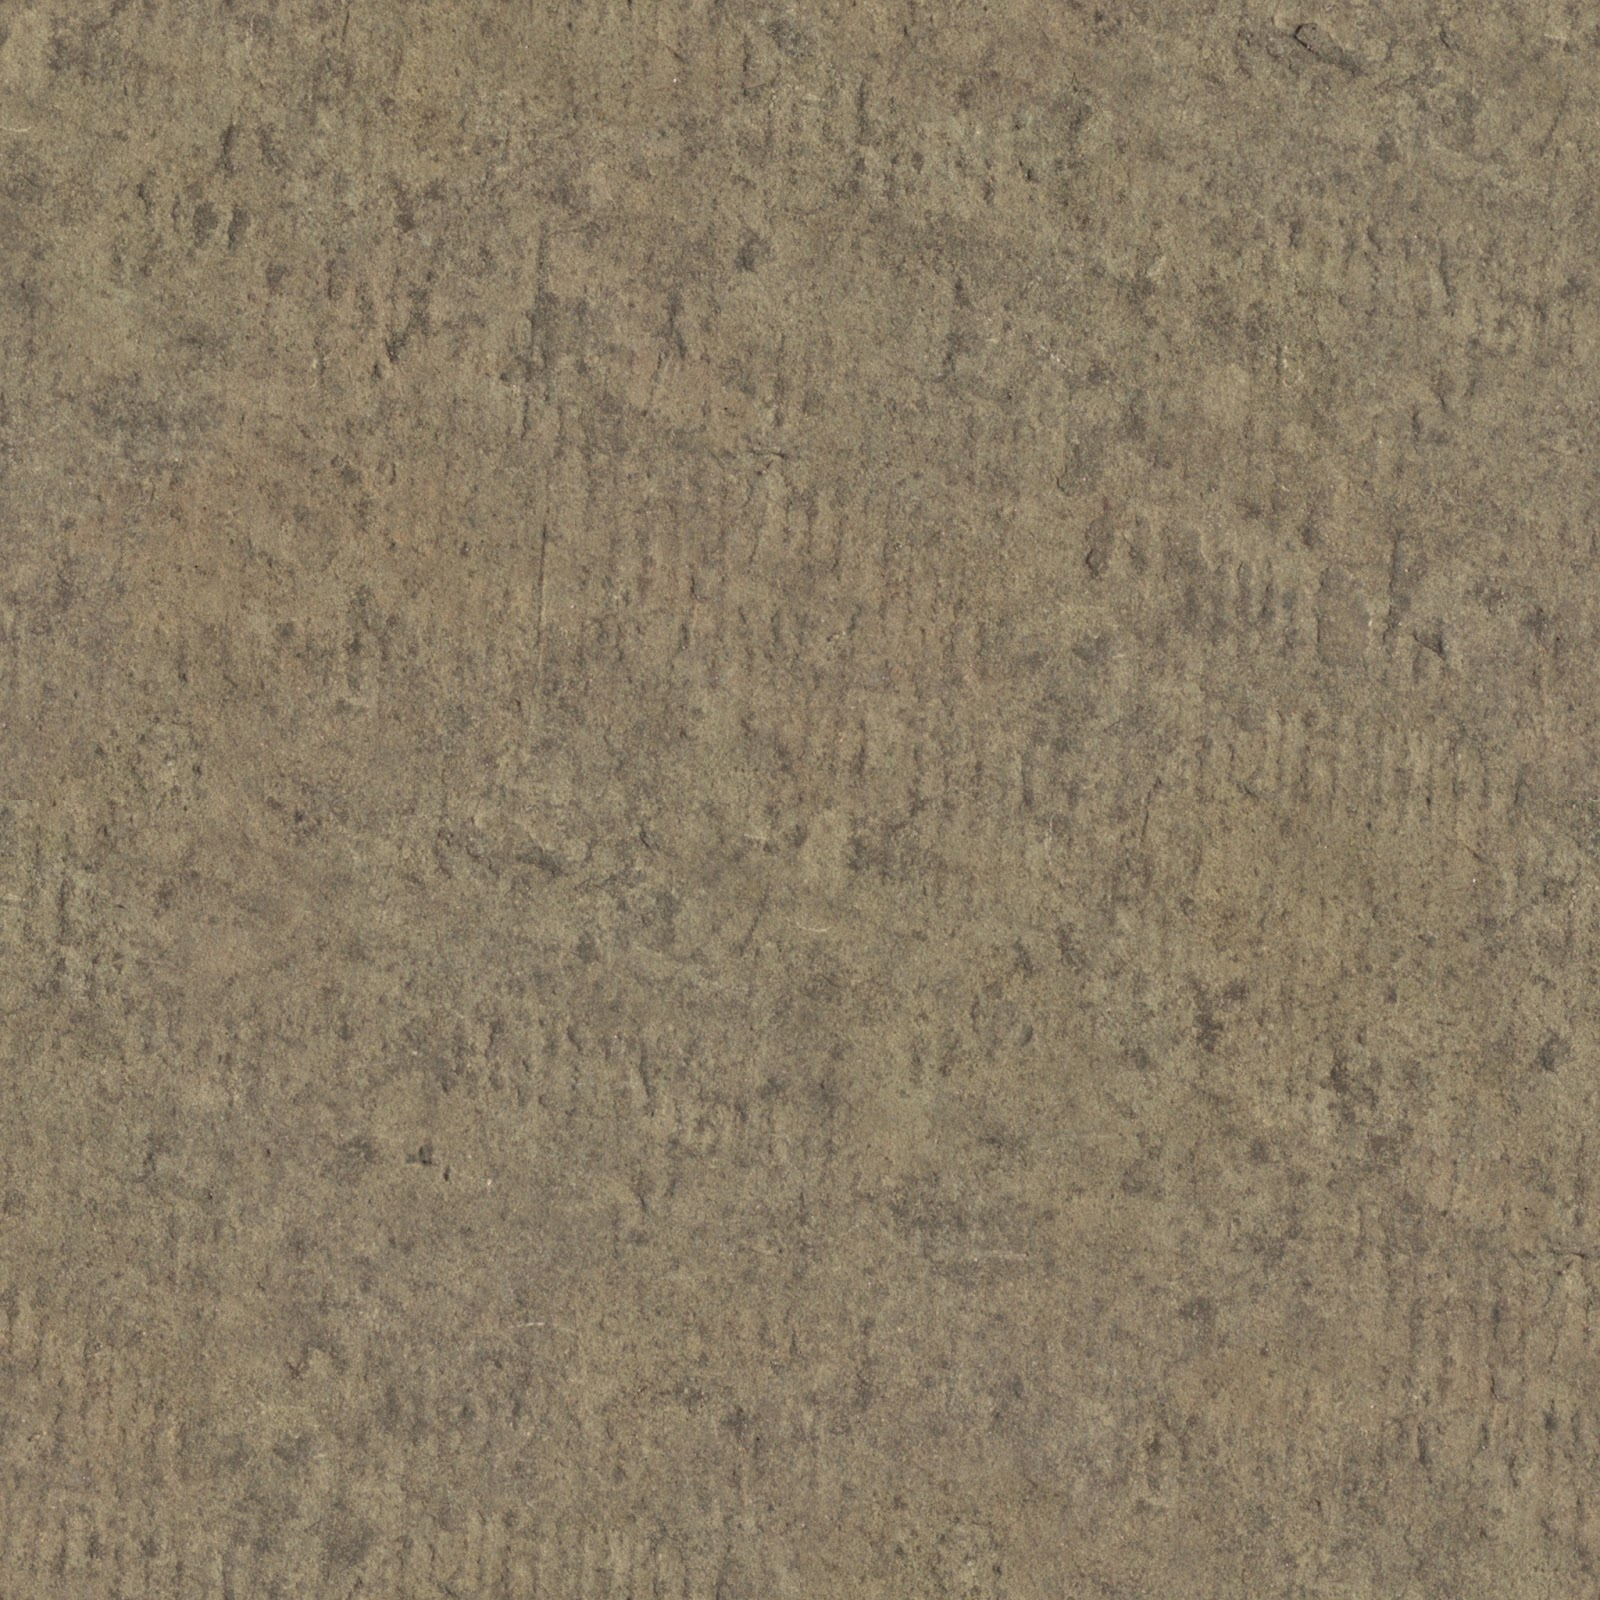 (Stone 5) rock cave mountain brown seamless texture 2048x2048